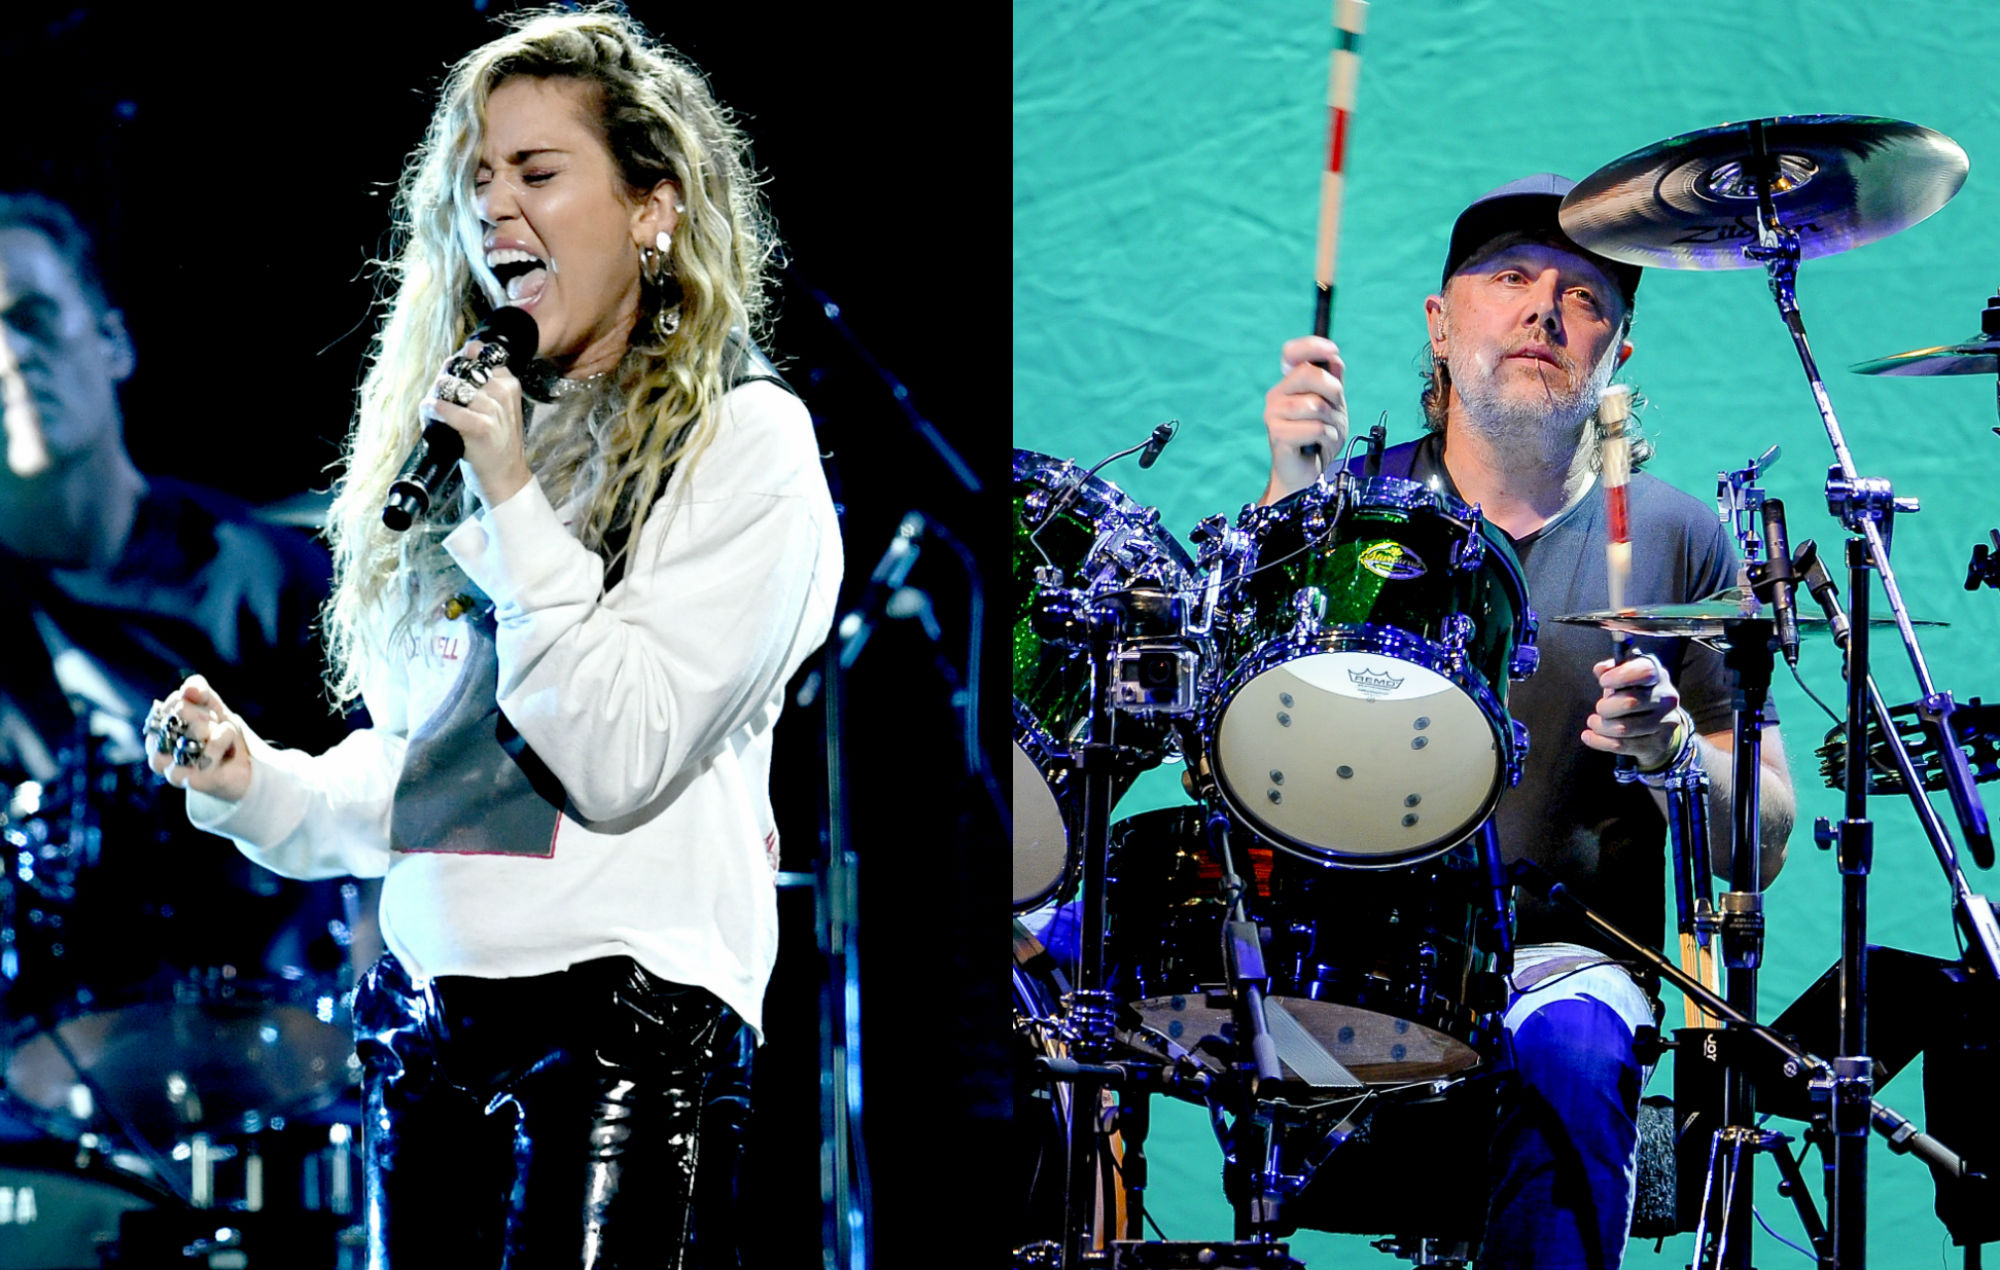 """Metallica's Lars Ulrich was """"stunned"""" by Miley Cyrus' performance at Chris Cornell tribute concert"""